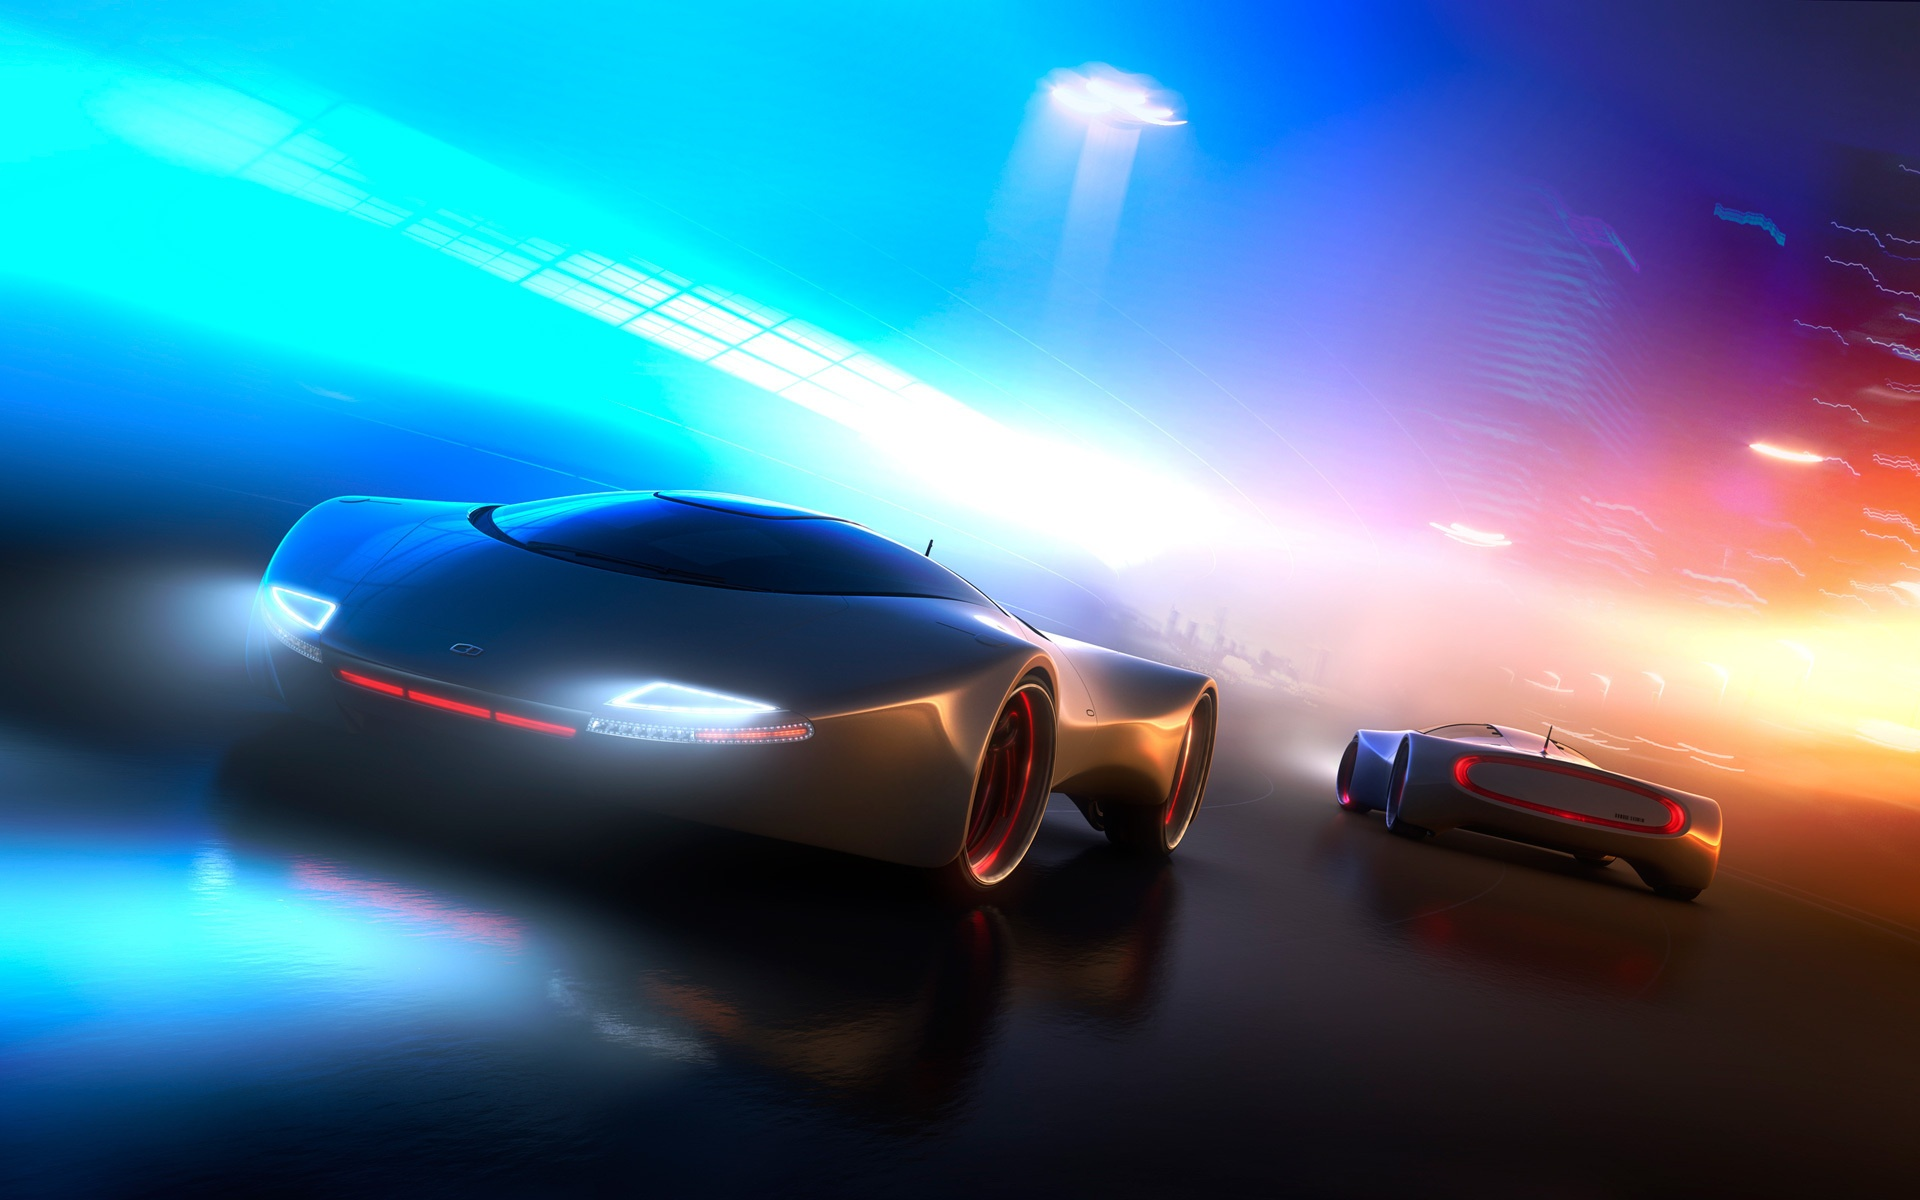 Wallpaper Neon Light Concept Car 1920x1200 Hd Picture Image